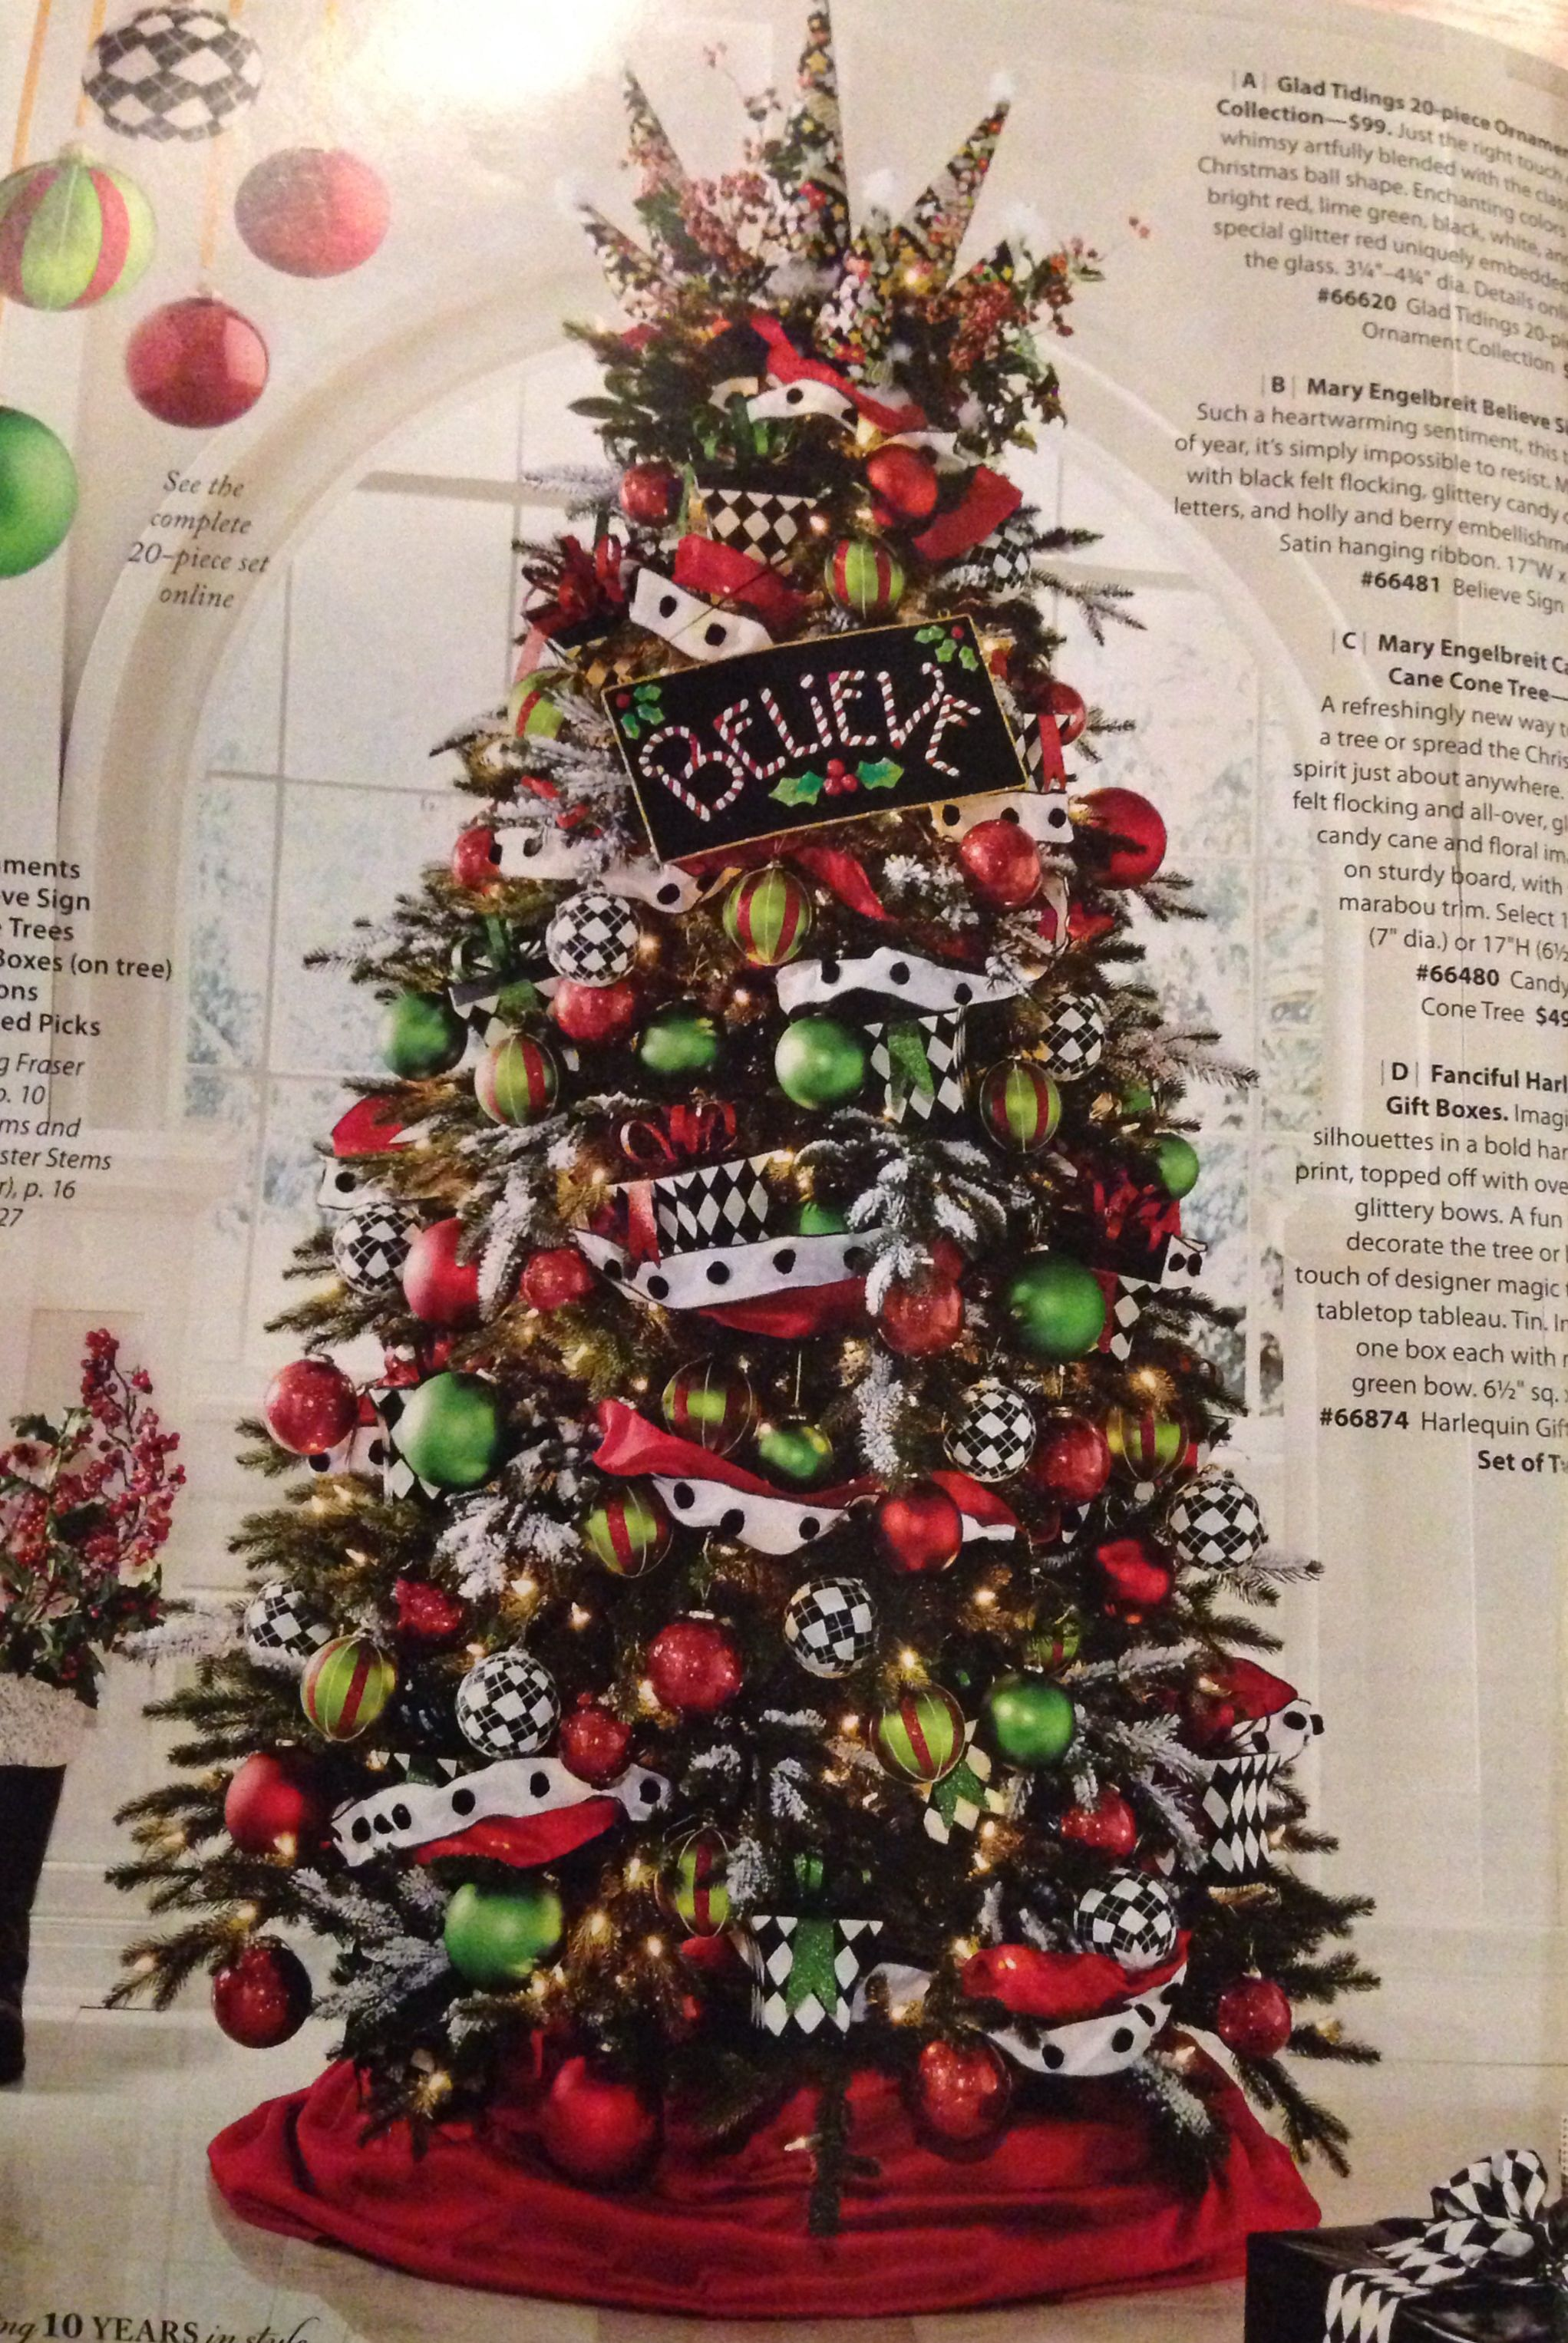 Christmas Tree Inspiration From A Magazine Nutcracker Christmas Tree Christmas Tree Inspiration Black Christmas Trees